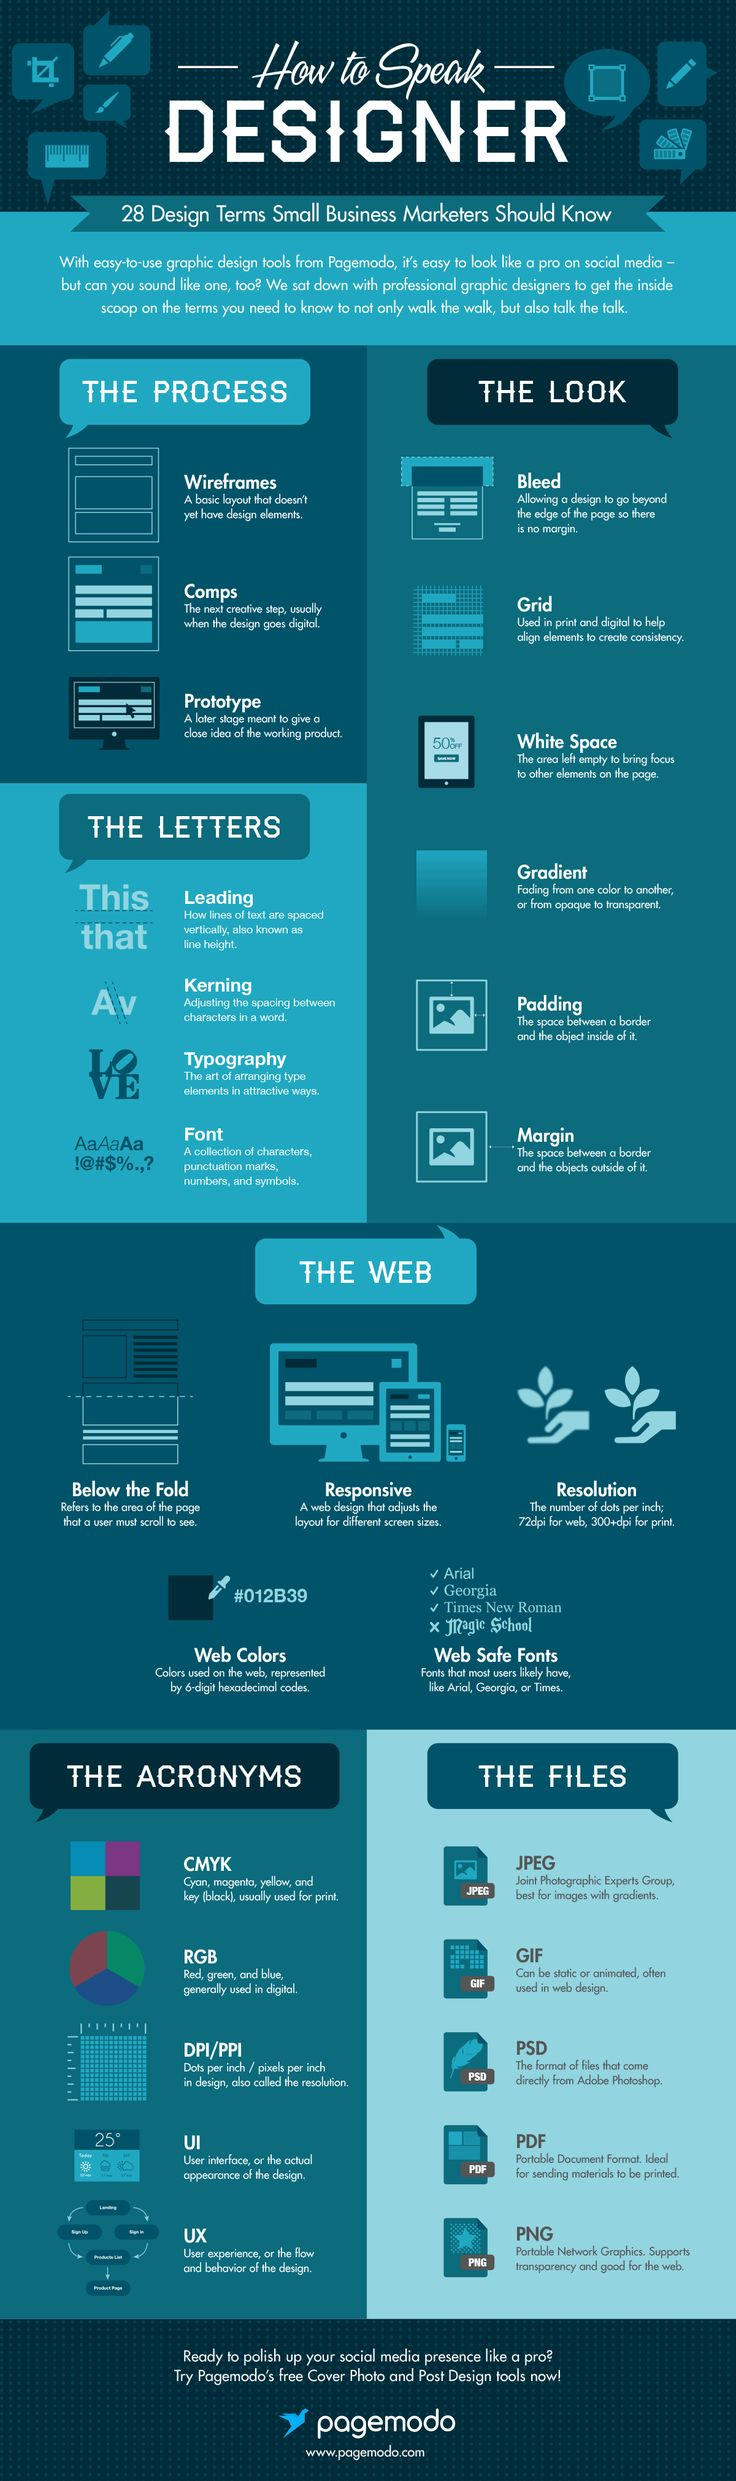 How To Speak Designer #infographic #Business #ContentMarketing #Designer